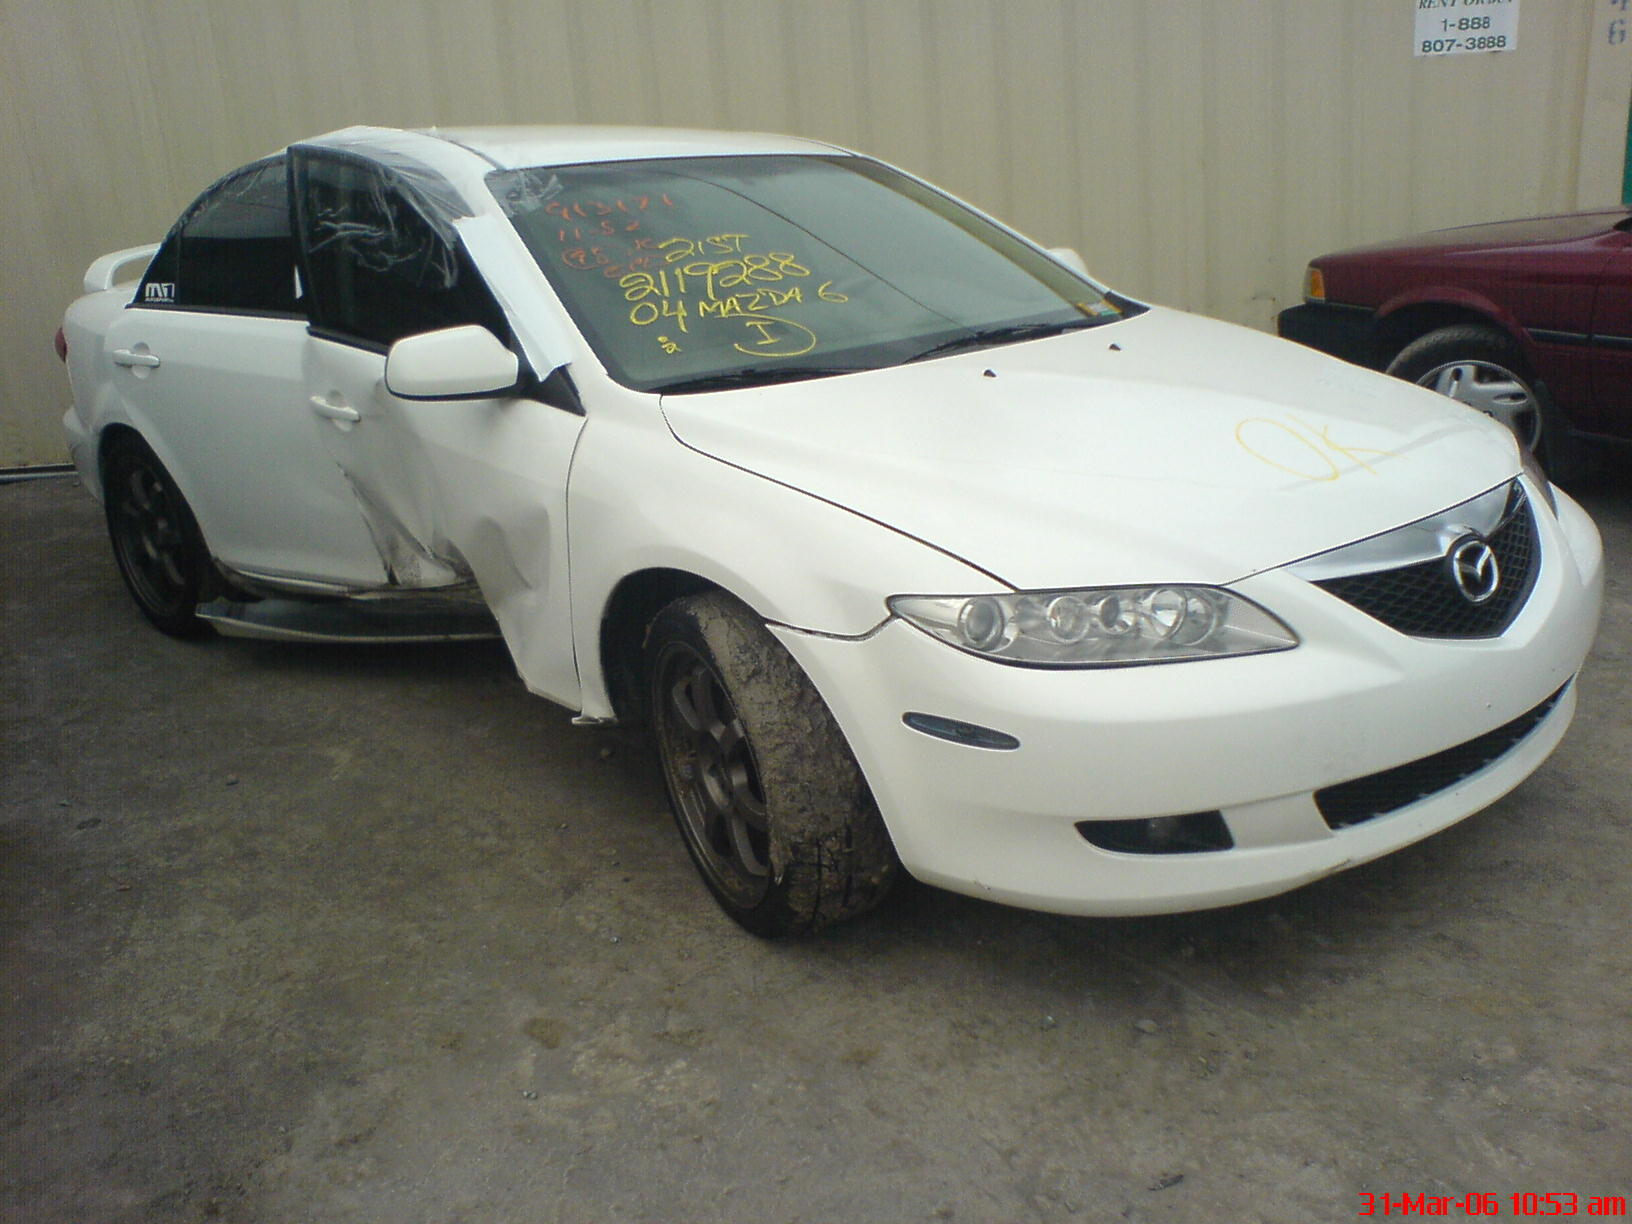 TOTALLED MAZDA6 PARTS FOR SALE - Mazda 6 Forums : Mazda 6 Forum ...